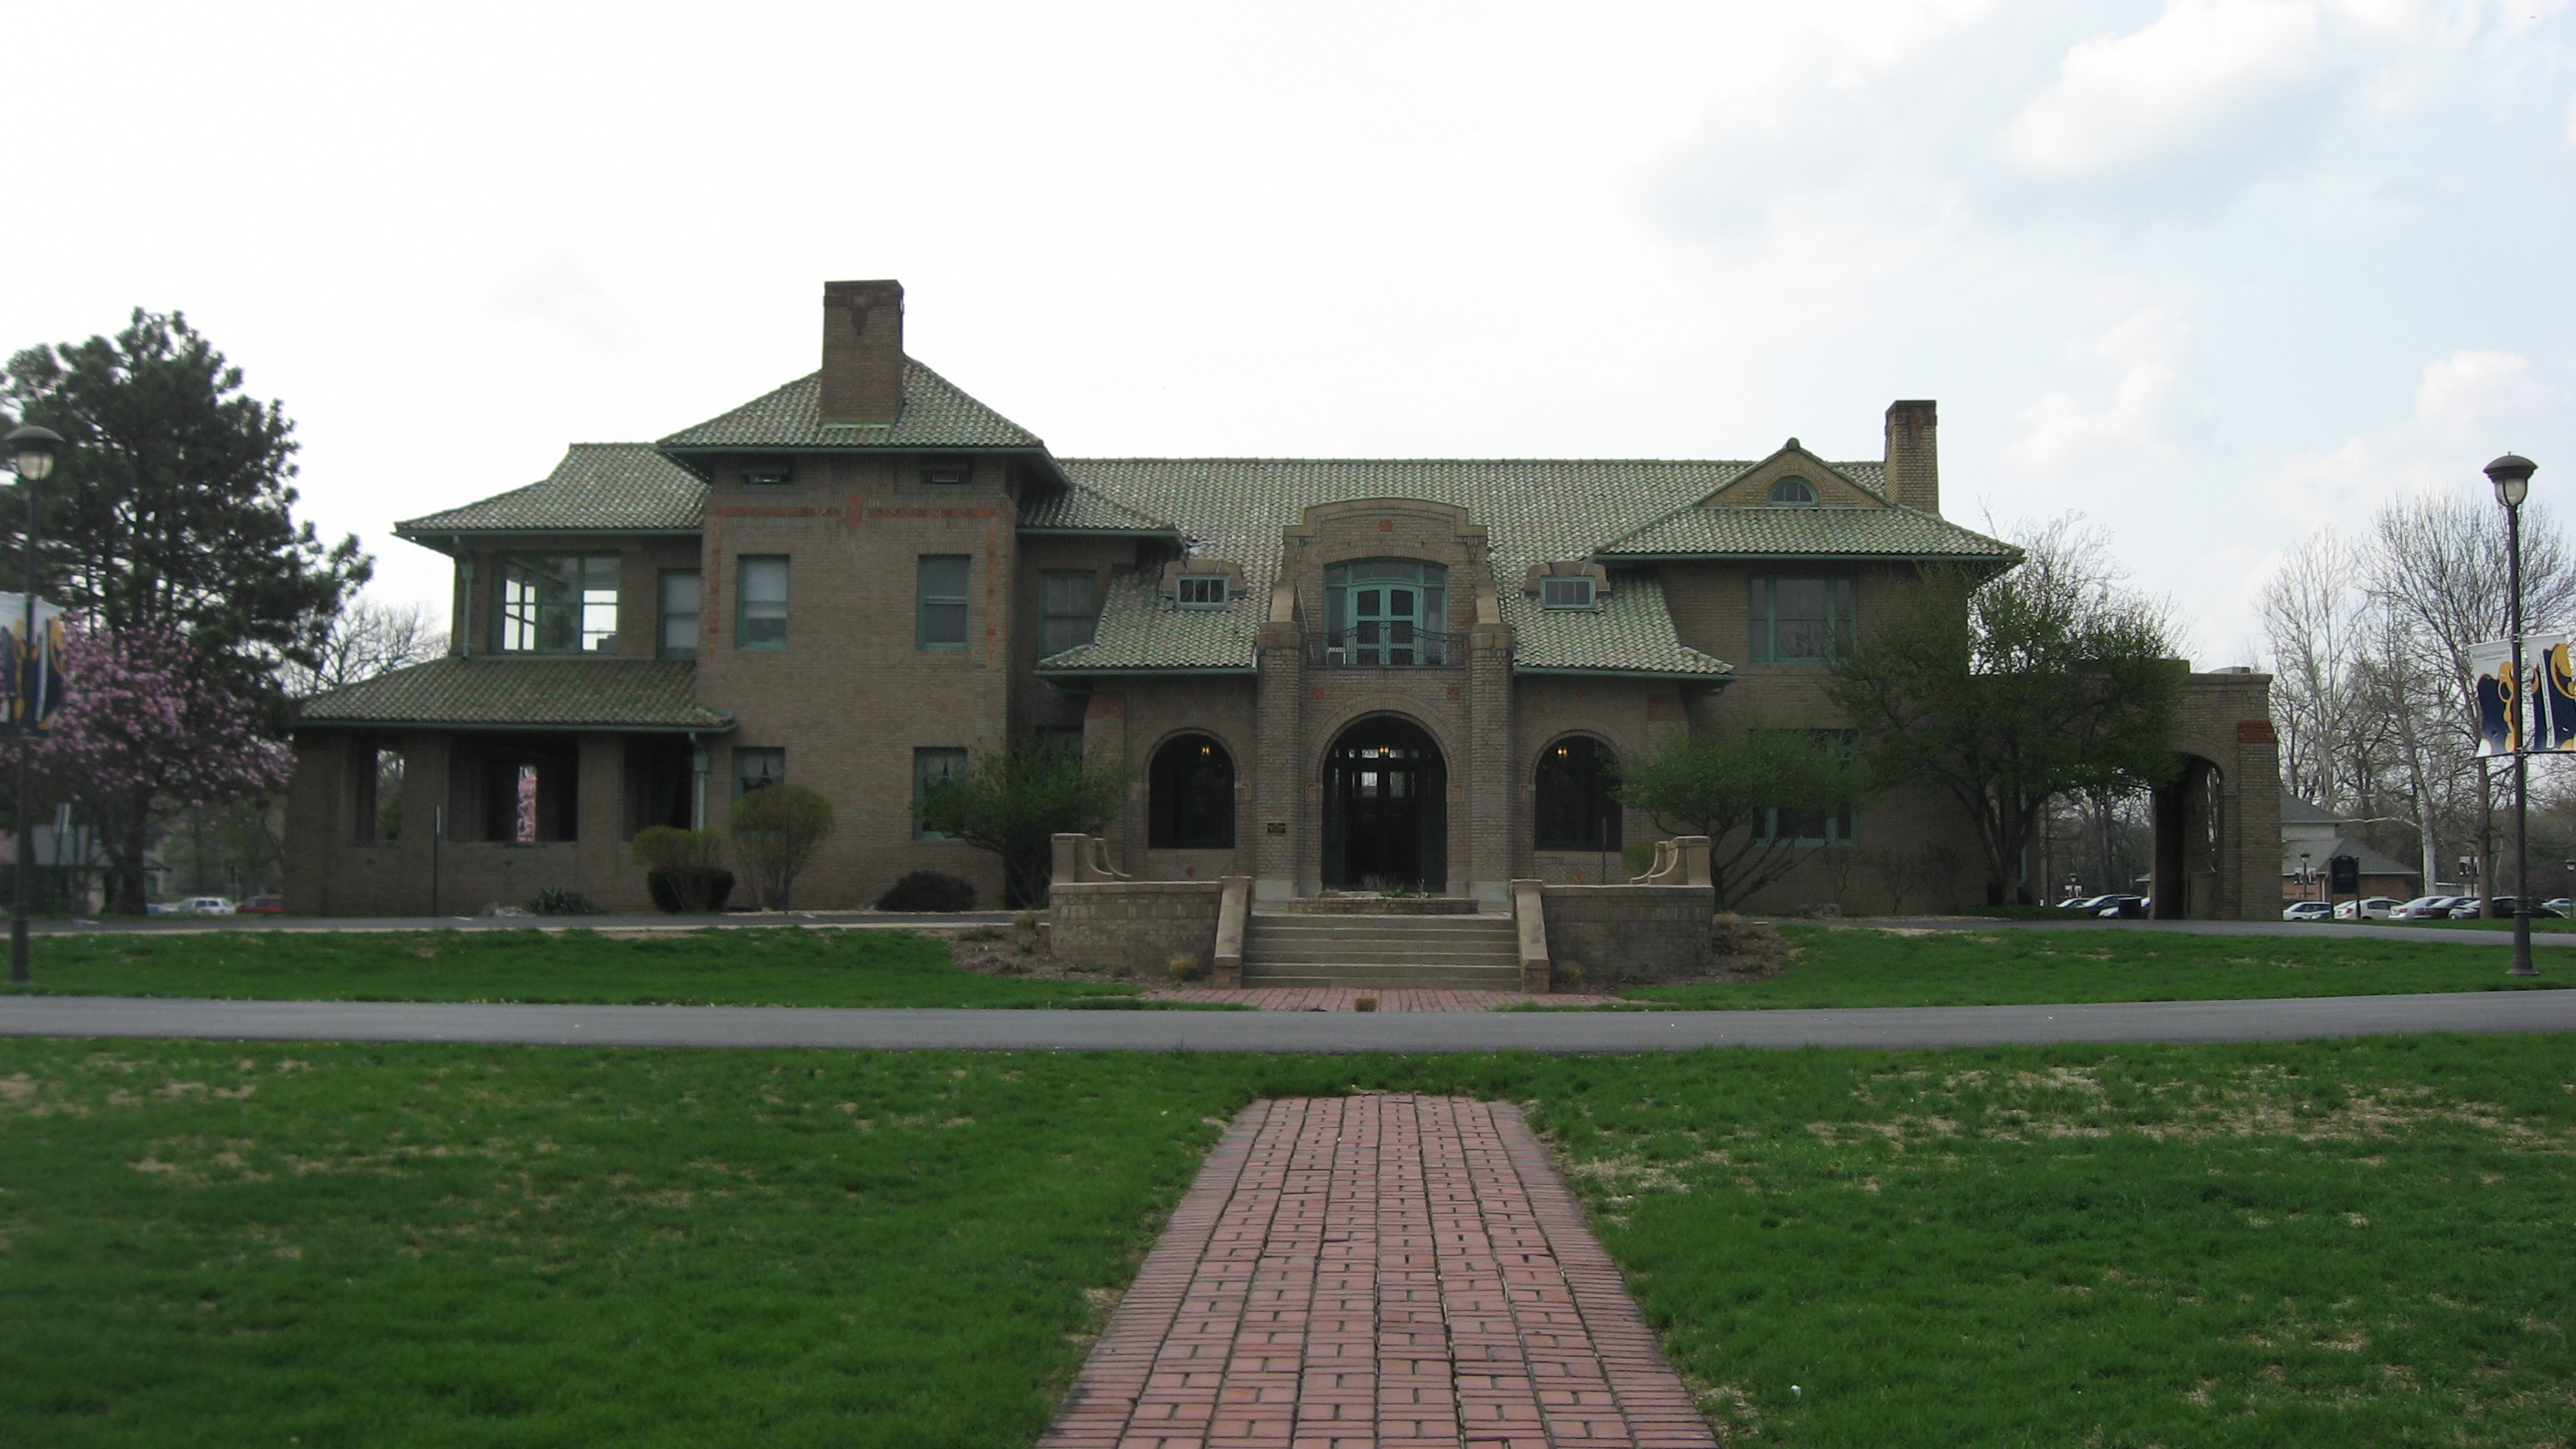 Wheeler—Stokely Mansion as it appears today from the front.